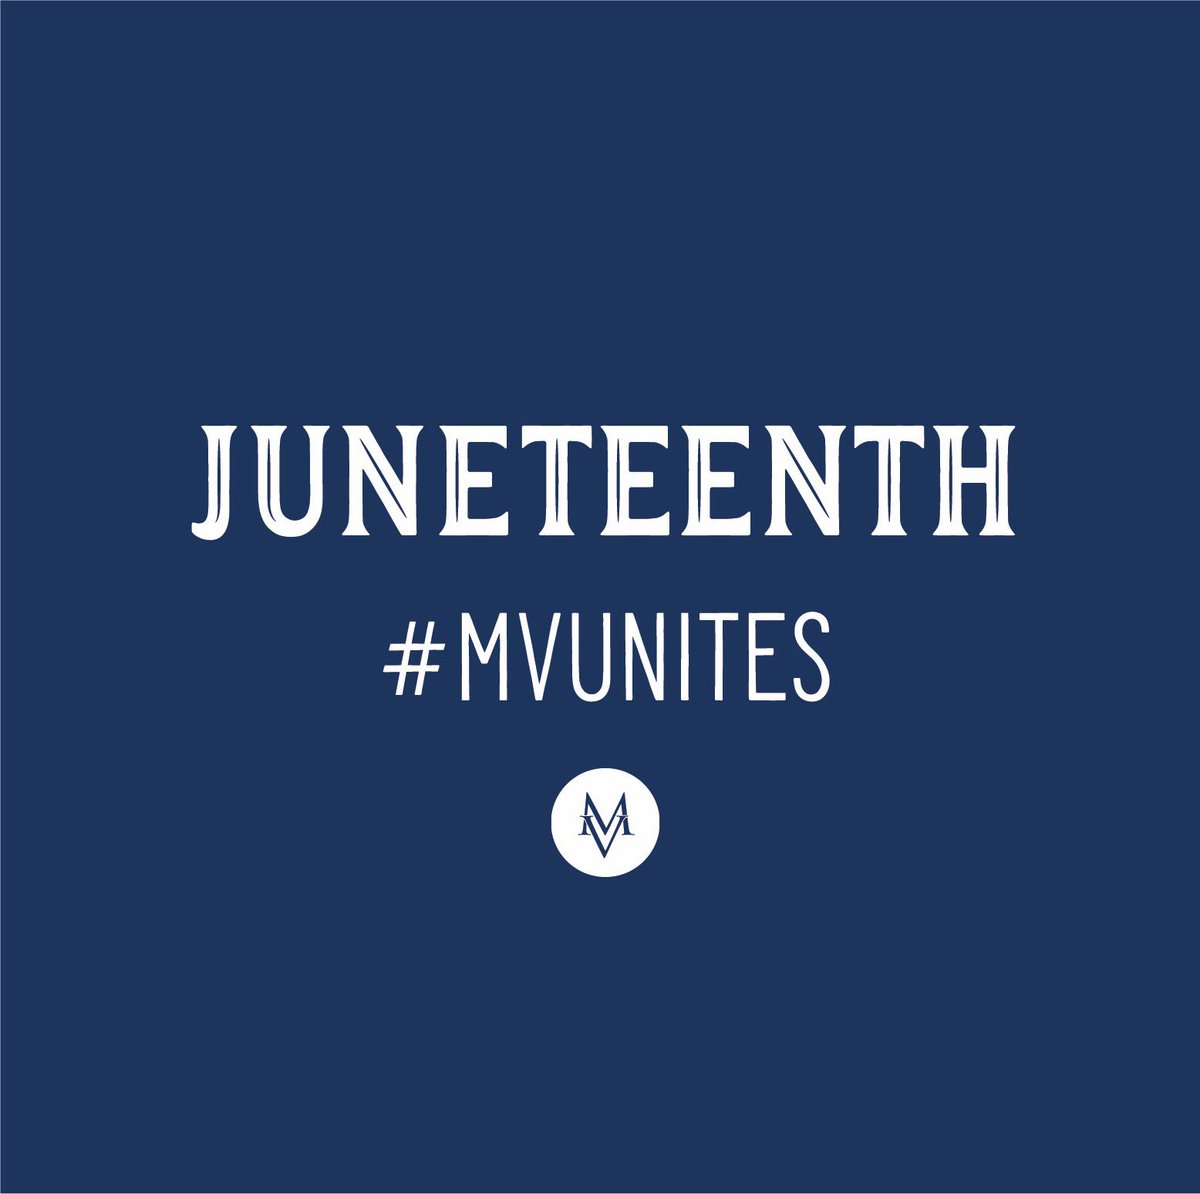 The Mount Vernon School On Twitter Commemorate Juneteenth By Learning More About The Historical Legacy Through The National Museum Of African American History Culture Nmaahc And Explore Their New Online Portal